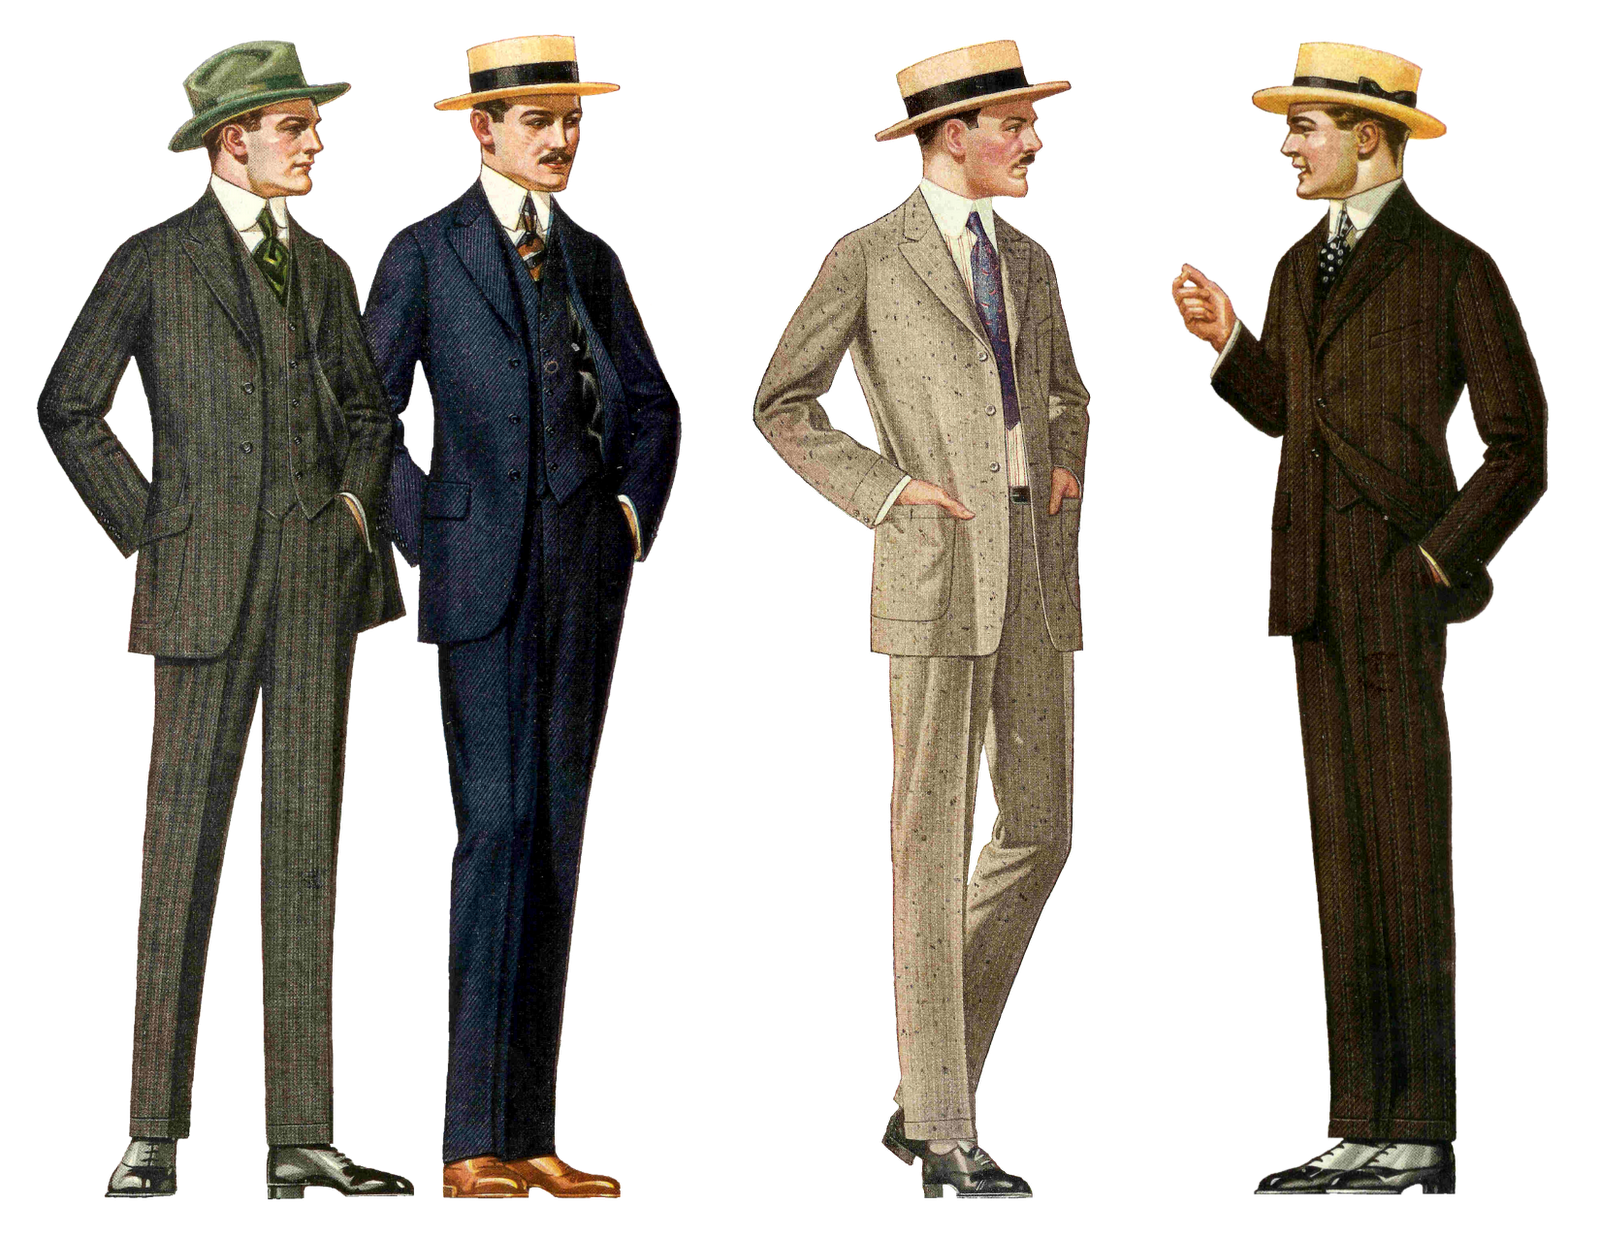 Vintage people png. Pants are not baggy